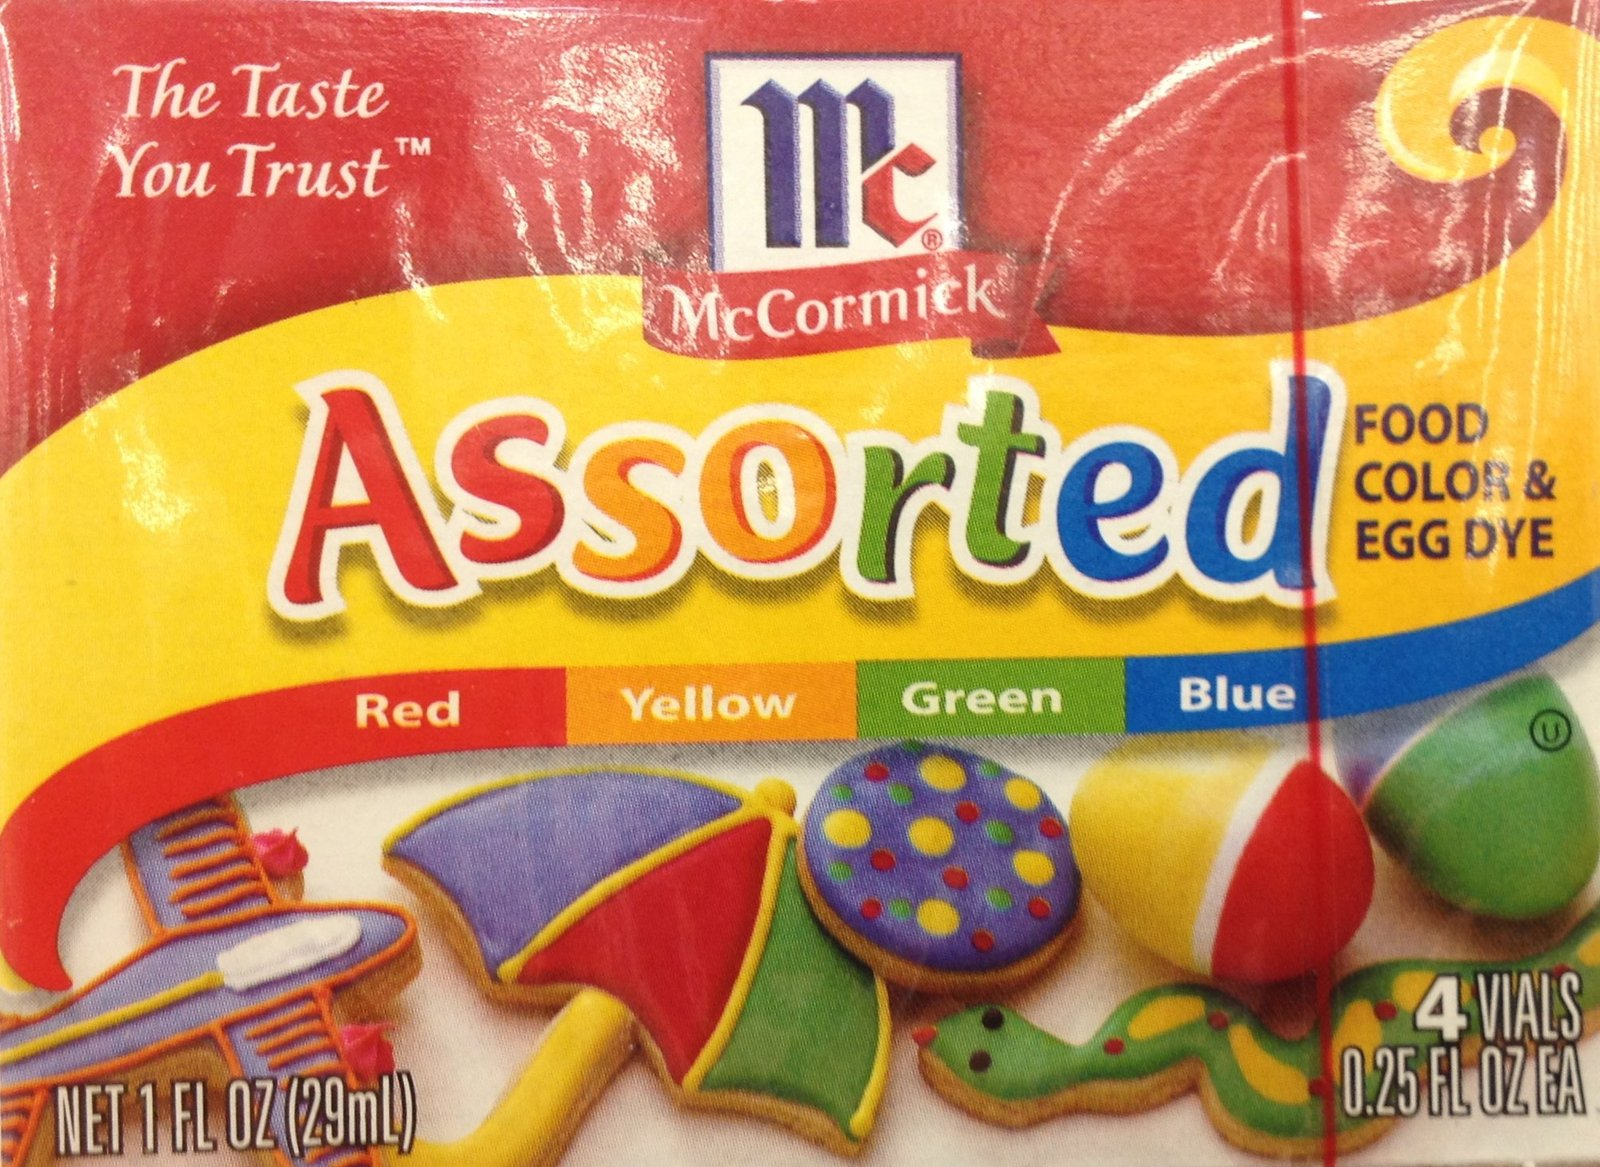 McCormick, Food Coloring & Egg Dye, Four and 42 similar items